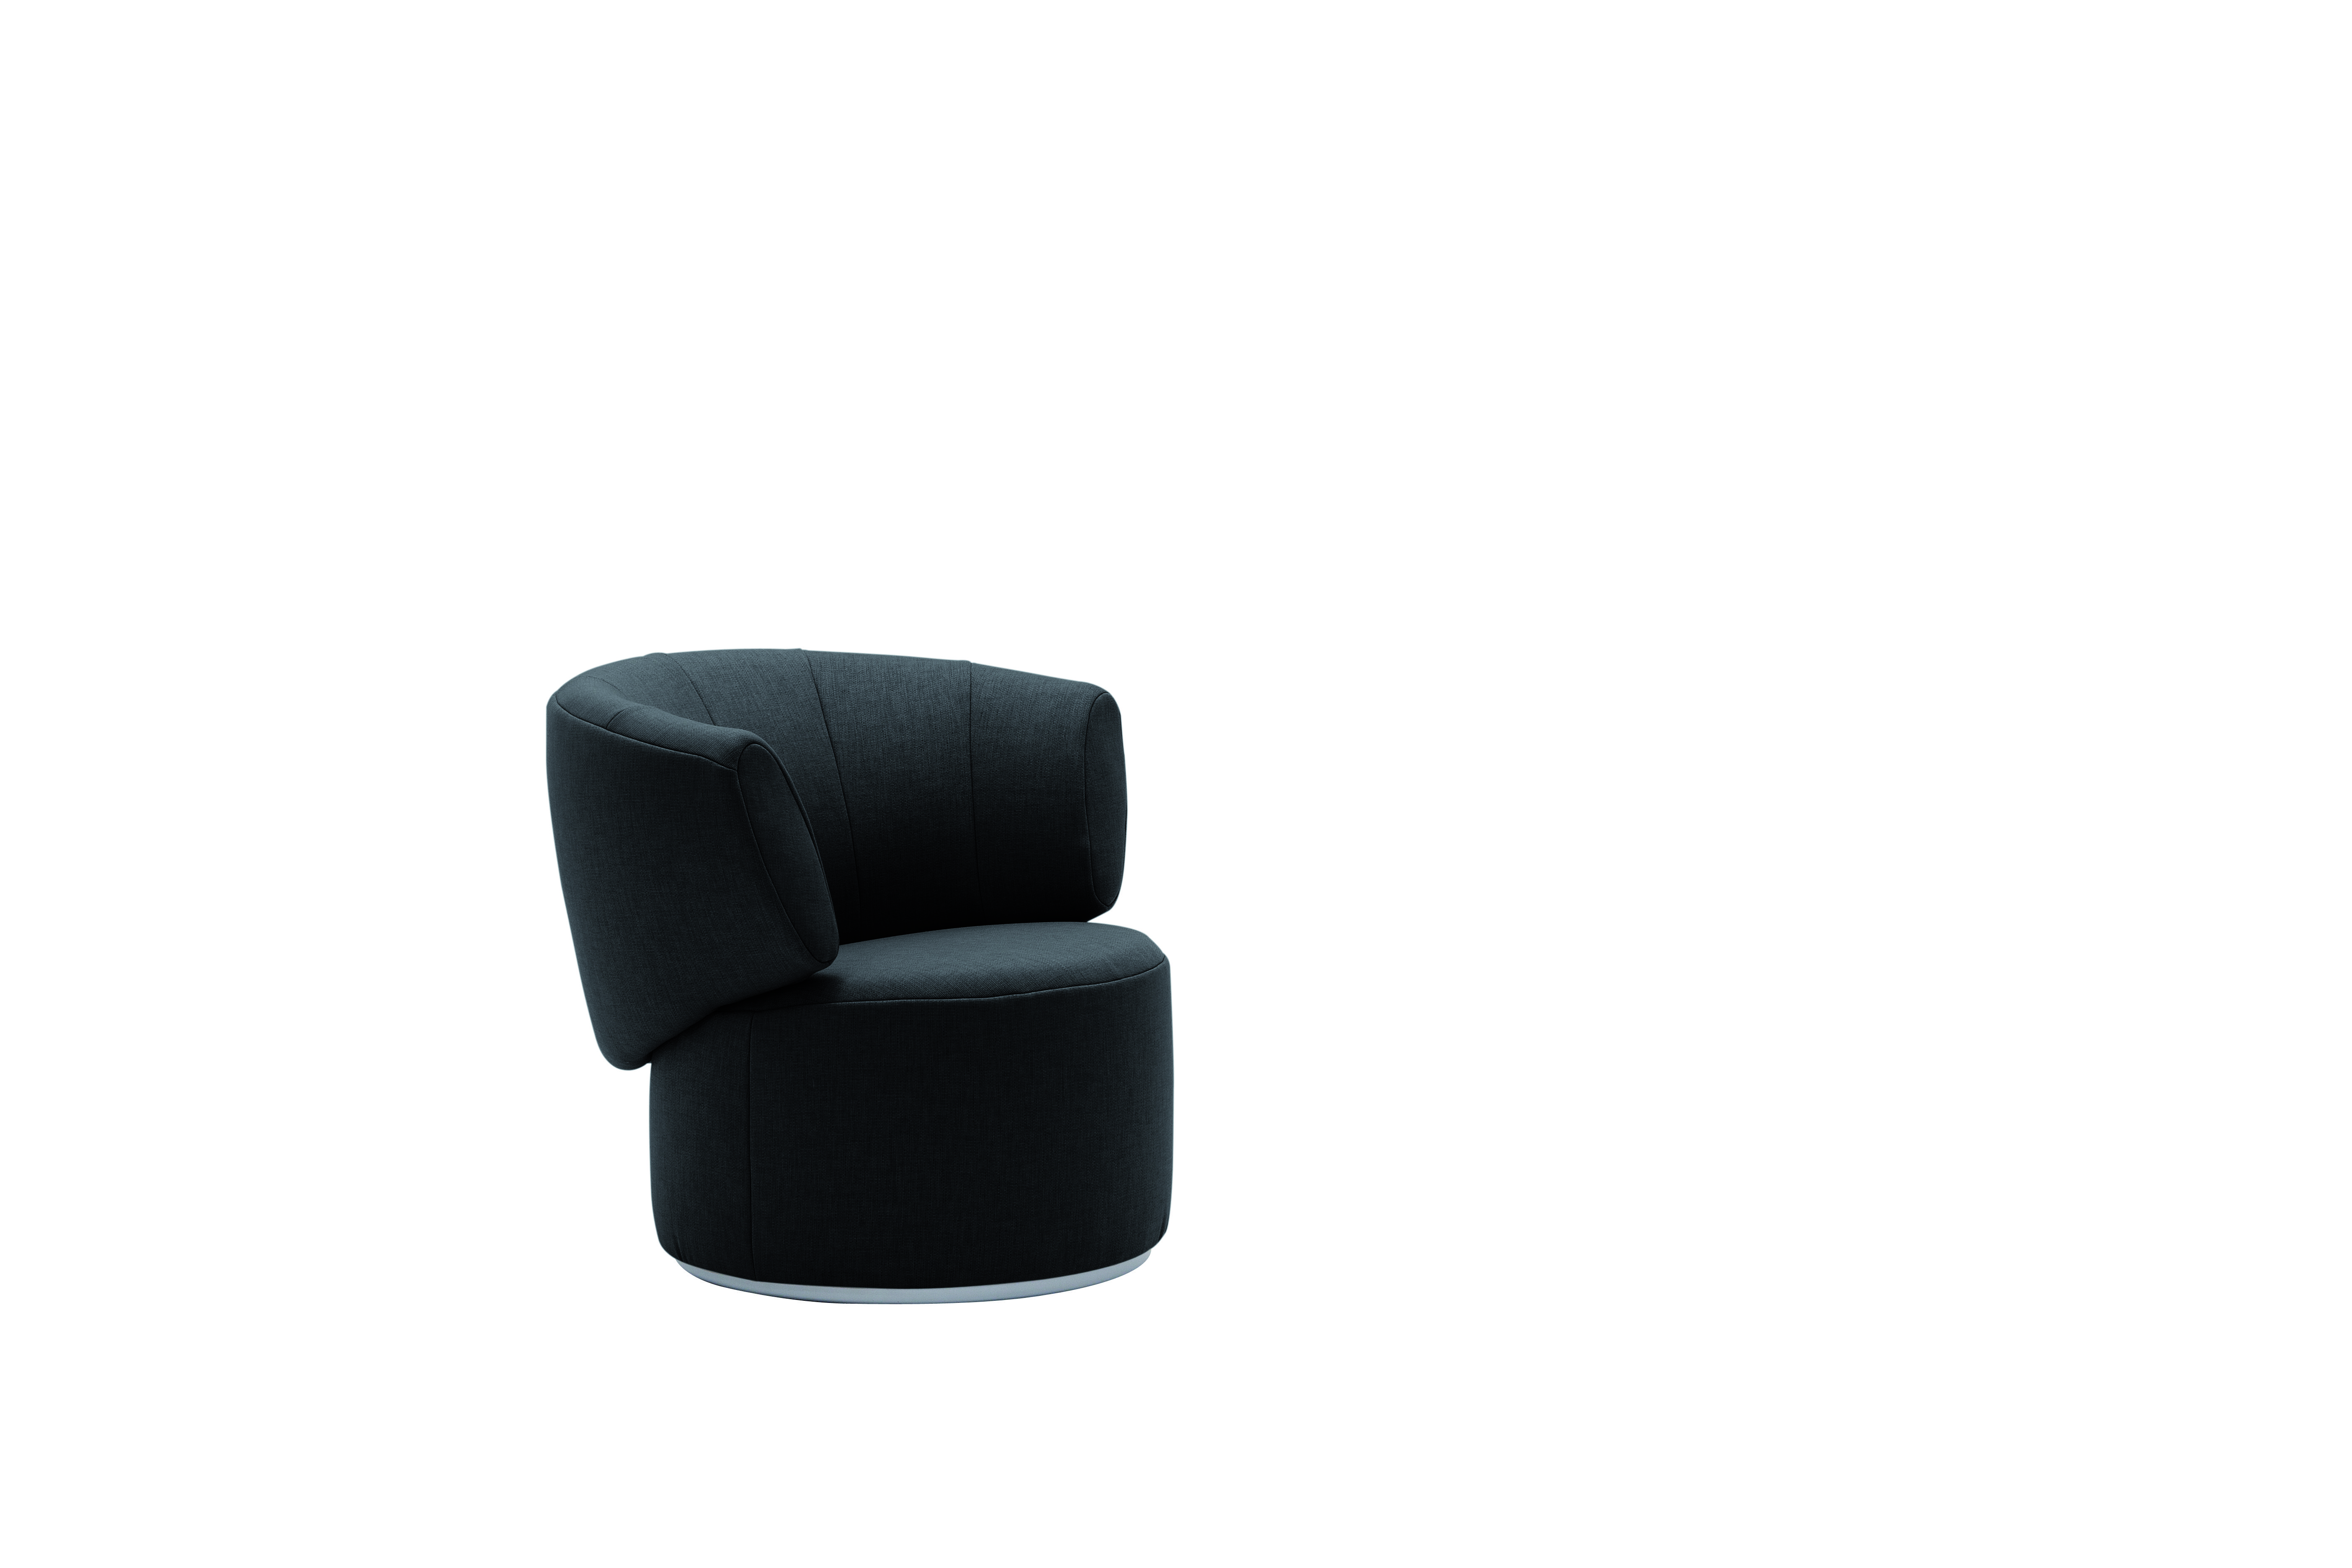 studio anise rolf benz 50 sofa. Interesting Sofa Rolf Benz 684 Lounge 684 Armchairs With 360 Degree Intended Studio Anise Rolf Benz 50 Sofa